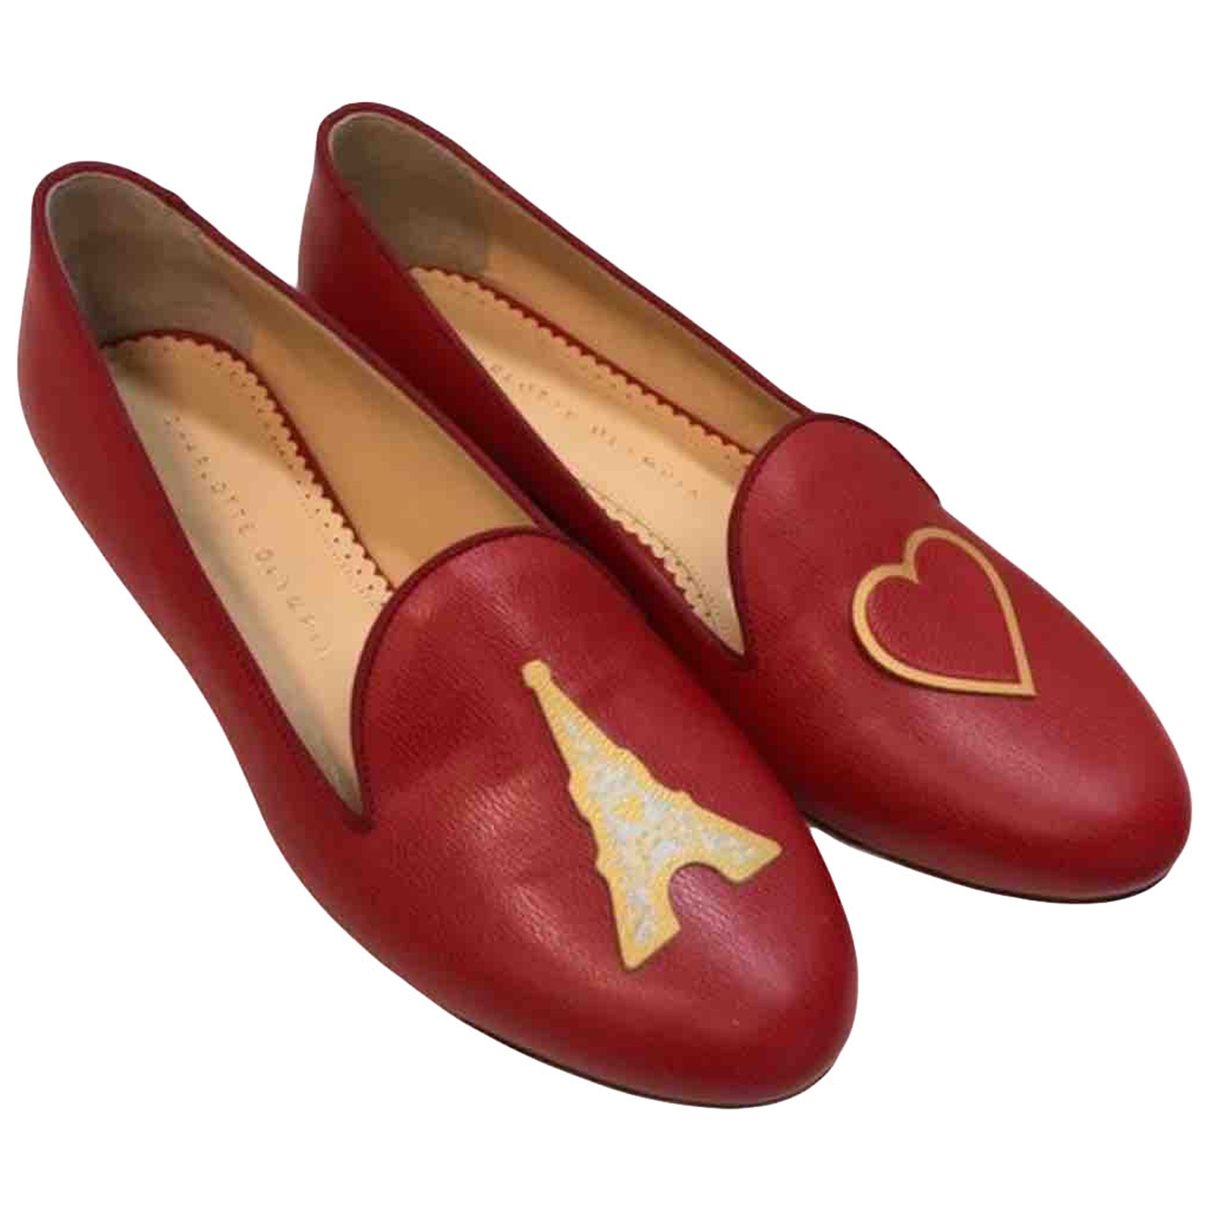 Charlotte Olympia \N Red Leather Flats for Women 37 EU